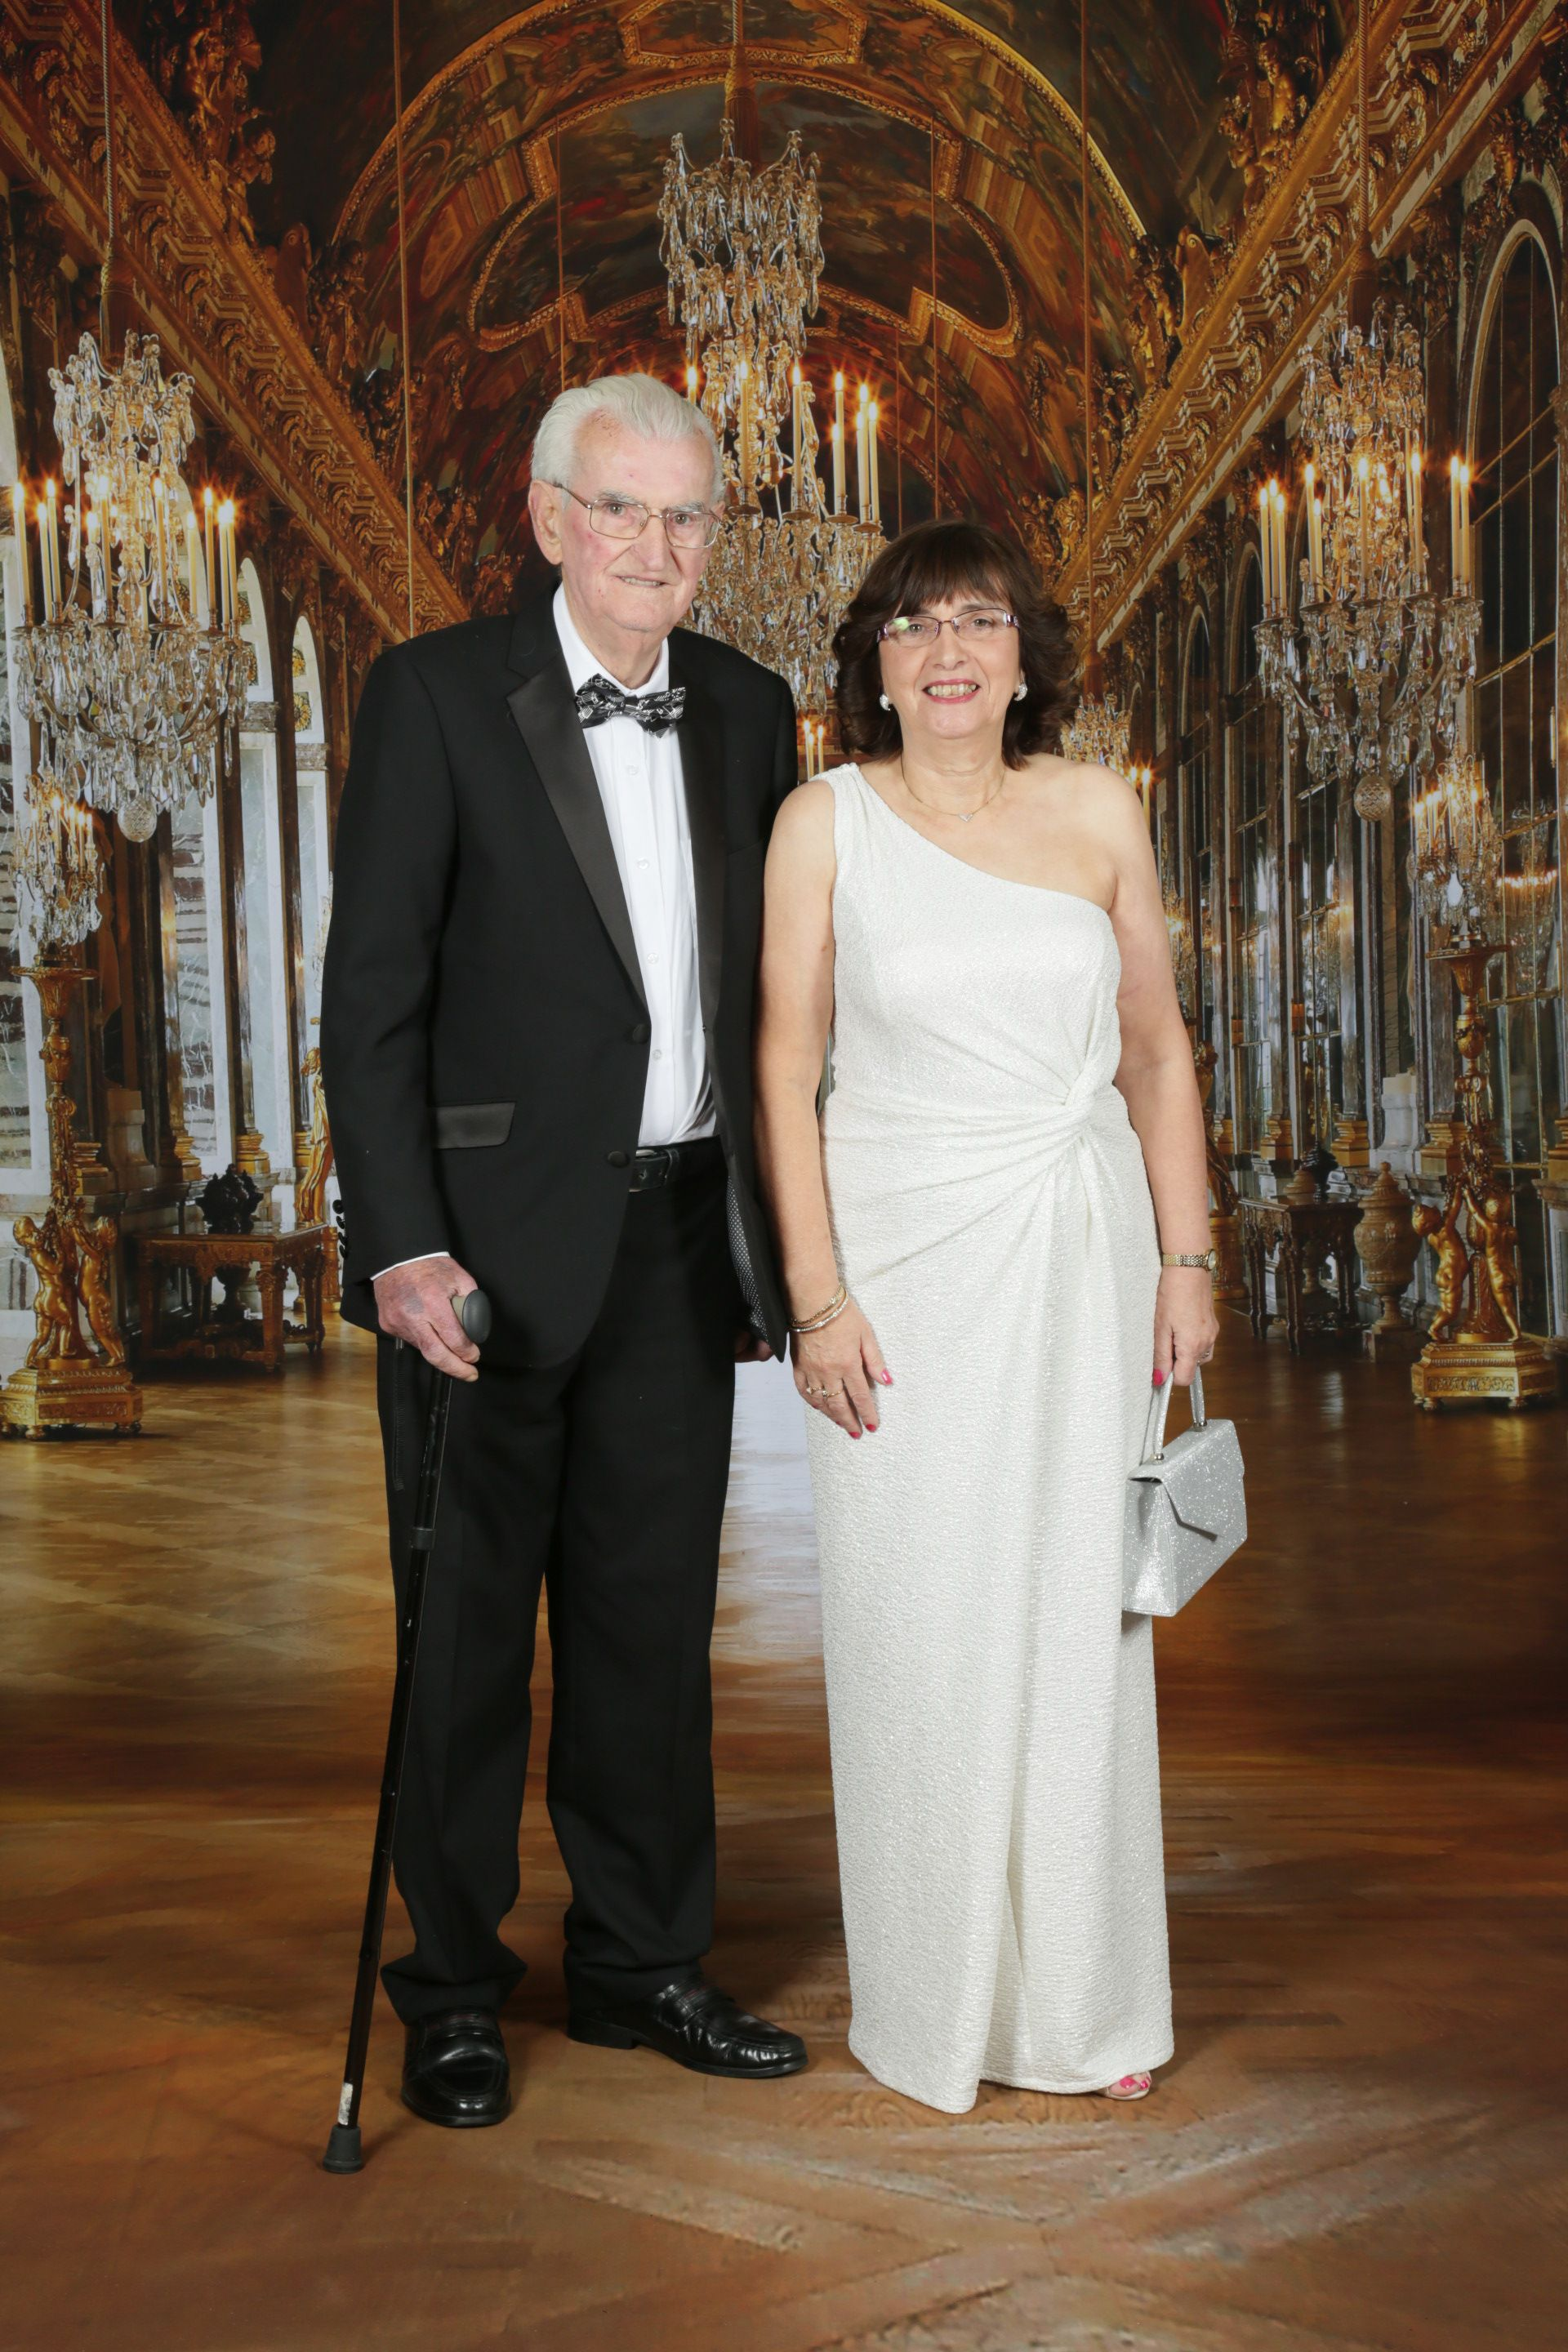 LEGACY:Tony Gilmore, founding and life member of St Agnes', along with his daughter Catherine, who is also a life member of the company, together at the St Agnes' Choral Society 60th Anniversary Ball in November 2016